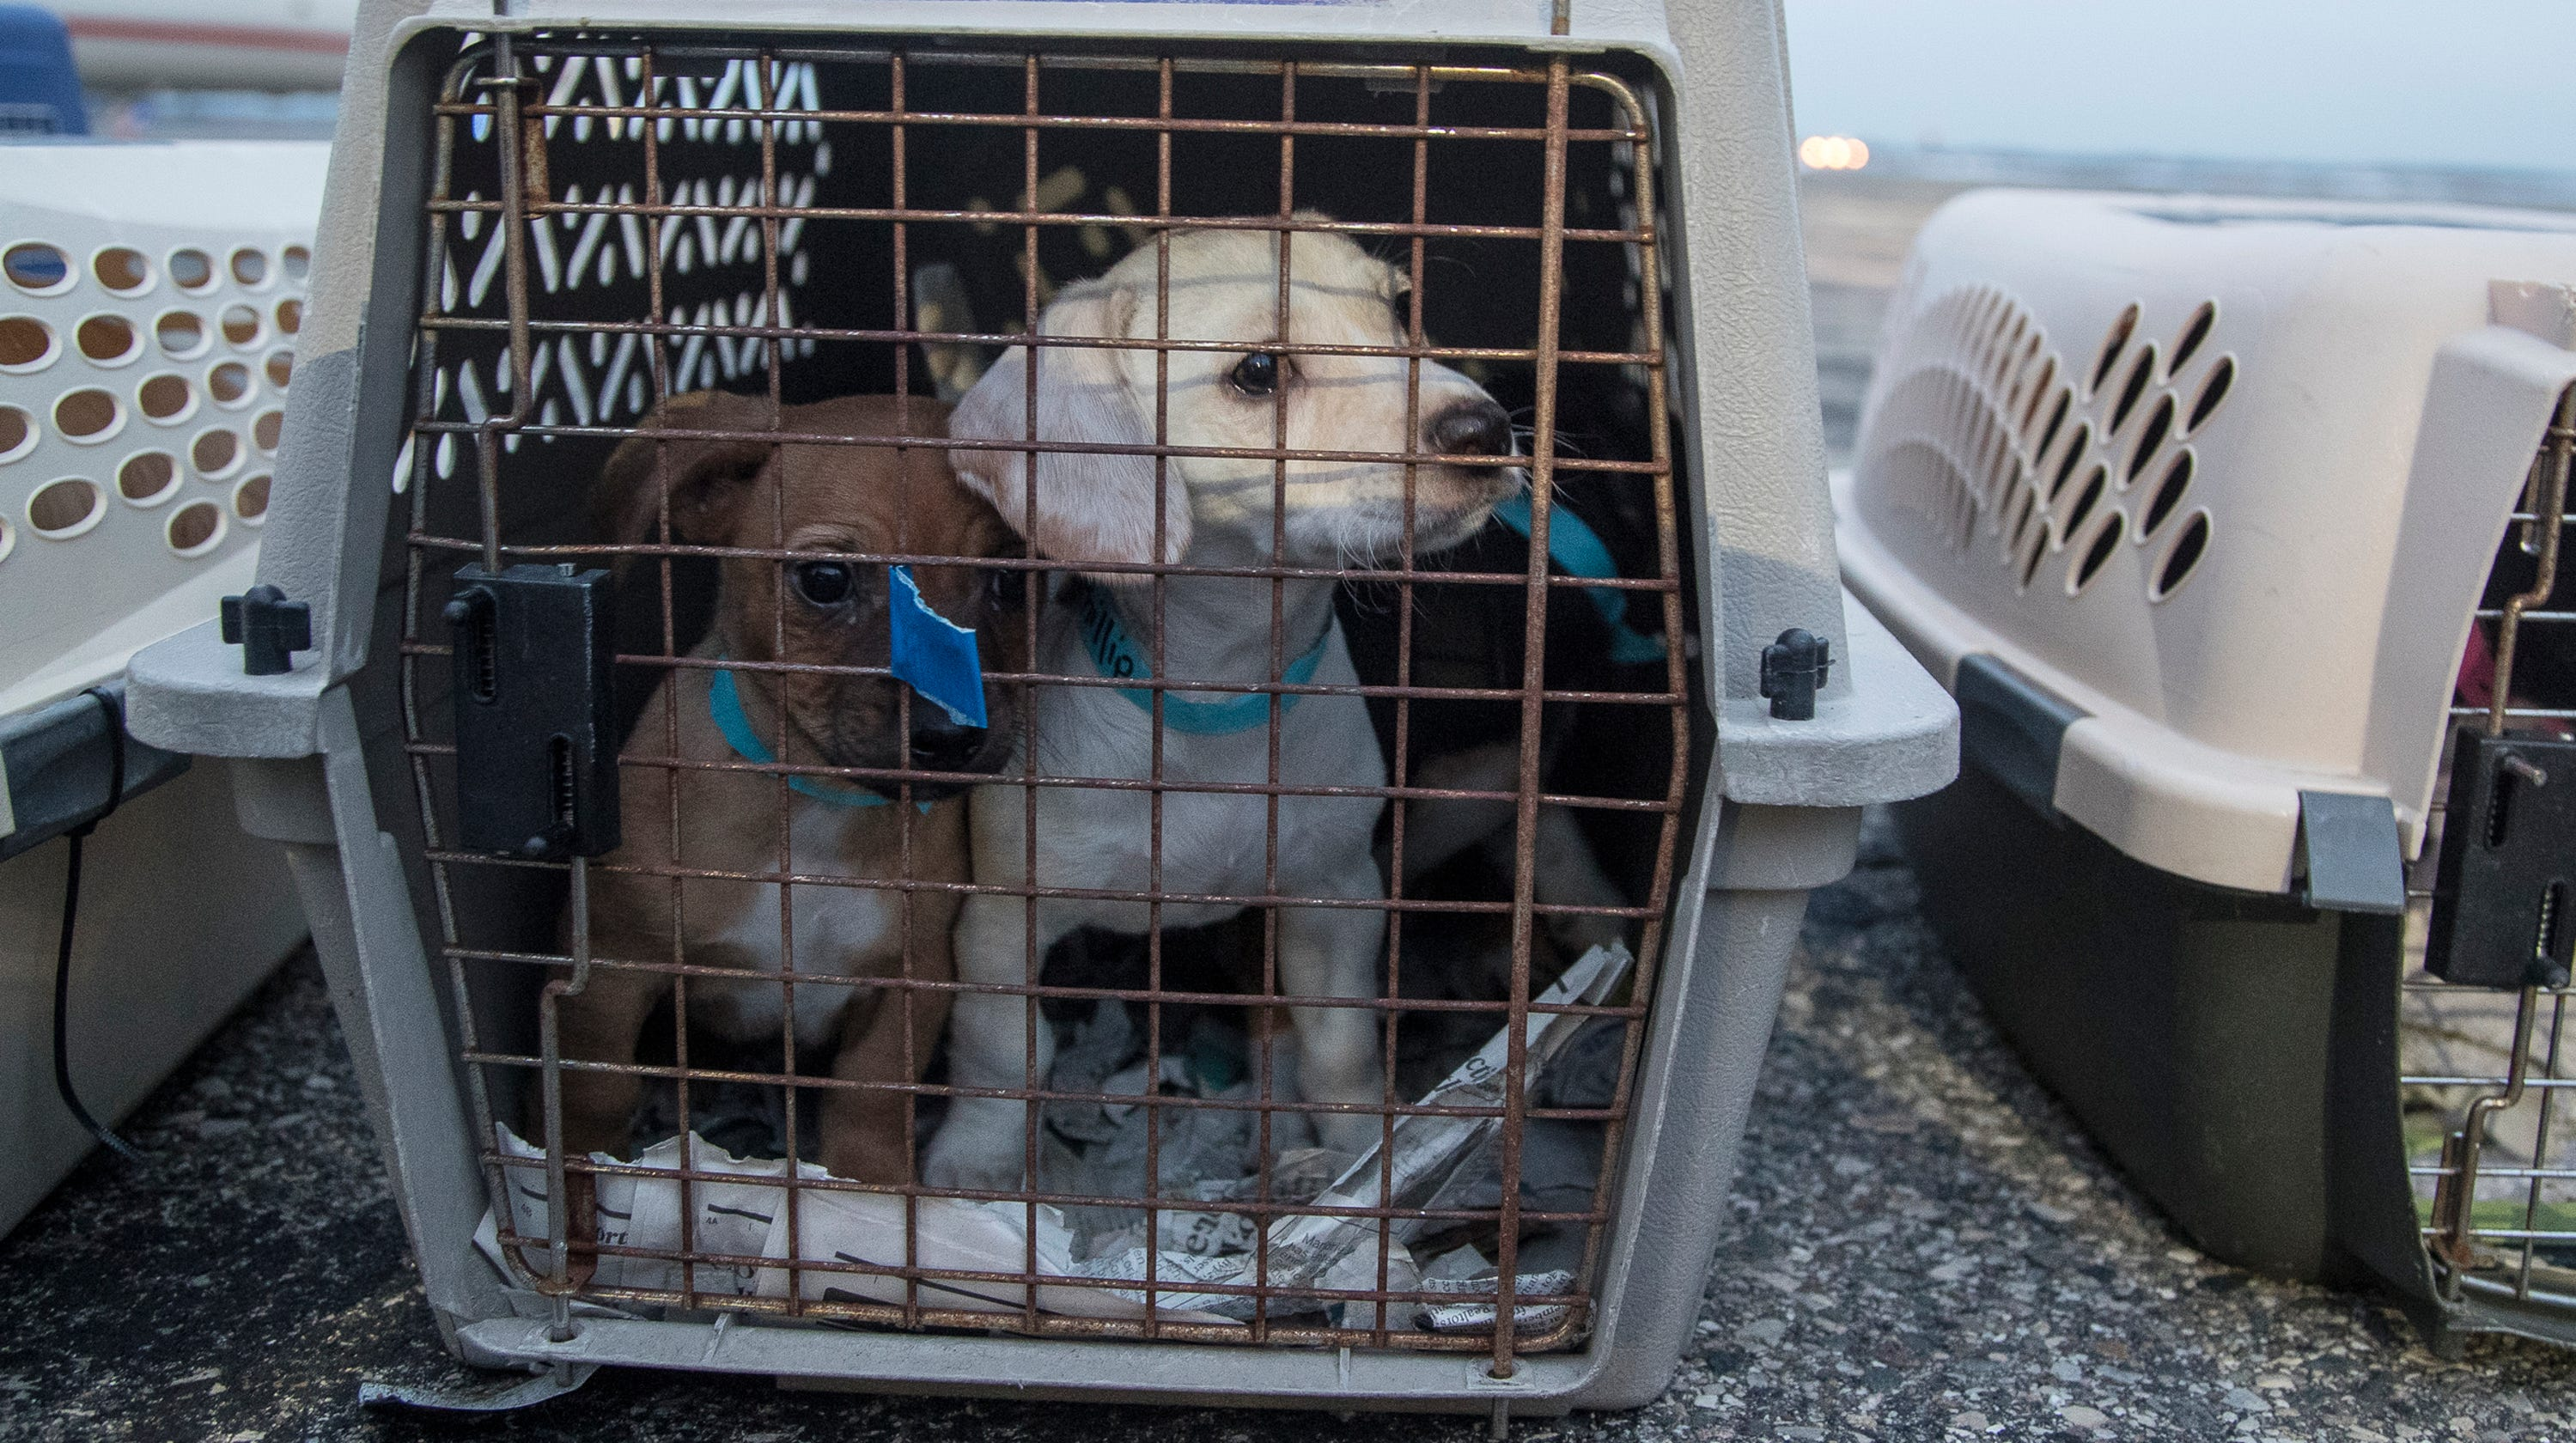 91 dogs, days from being euthanized, saved by Michigan